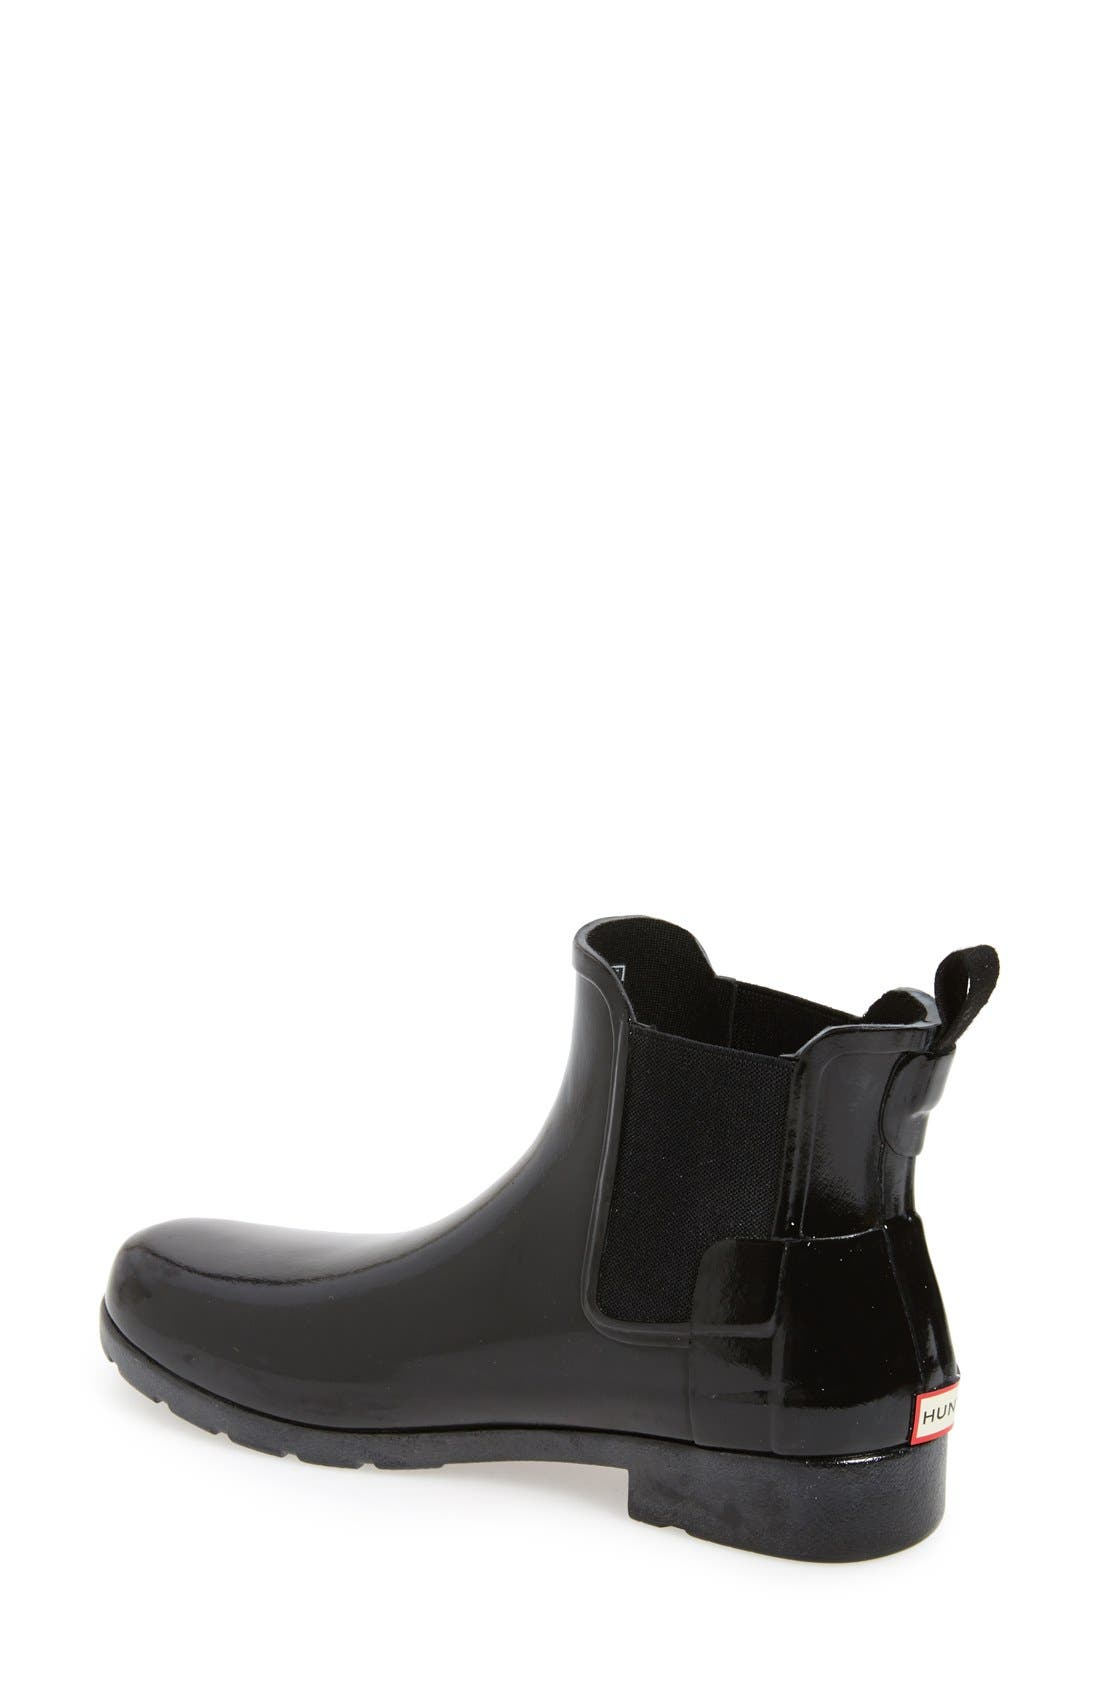 HUNTER,                             Original Refined Chelsea Waterproof Rain Boot,                             Alternate thumbnail 2, color,                             BLACK